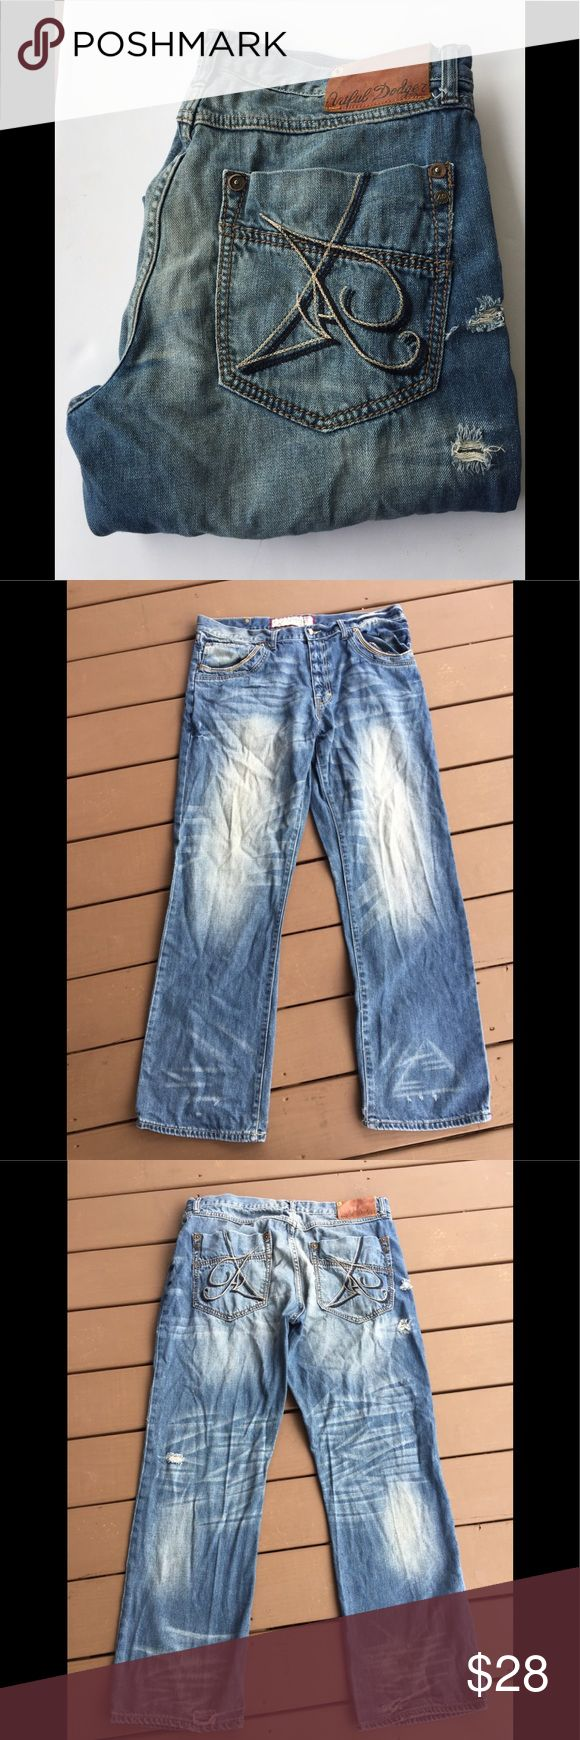 ARTFUL DODGER Mens Distressed Tapered Leg Jeans GREAT Jeans! Review exact measurements in description to confirm proper fit. Spend time in photos to know exactly the jeans you will be receiving. From smoke and pet free home. 100% Cotton Artful Dodger Jeans